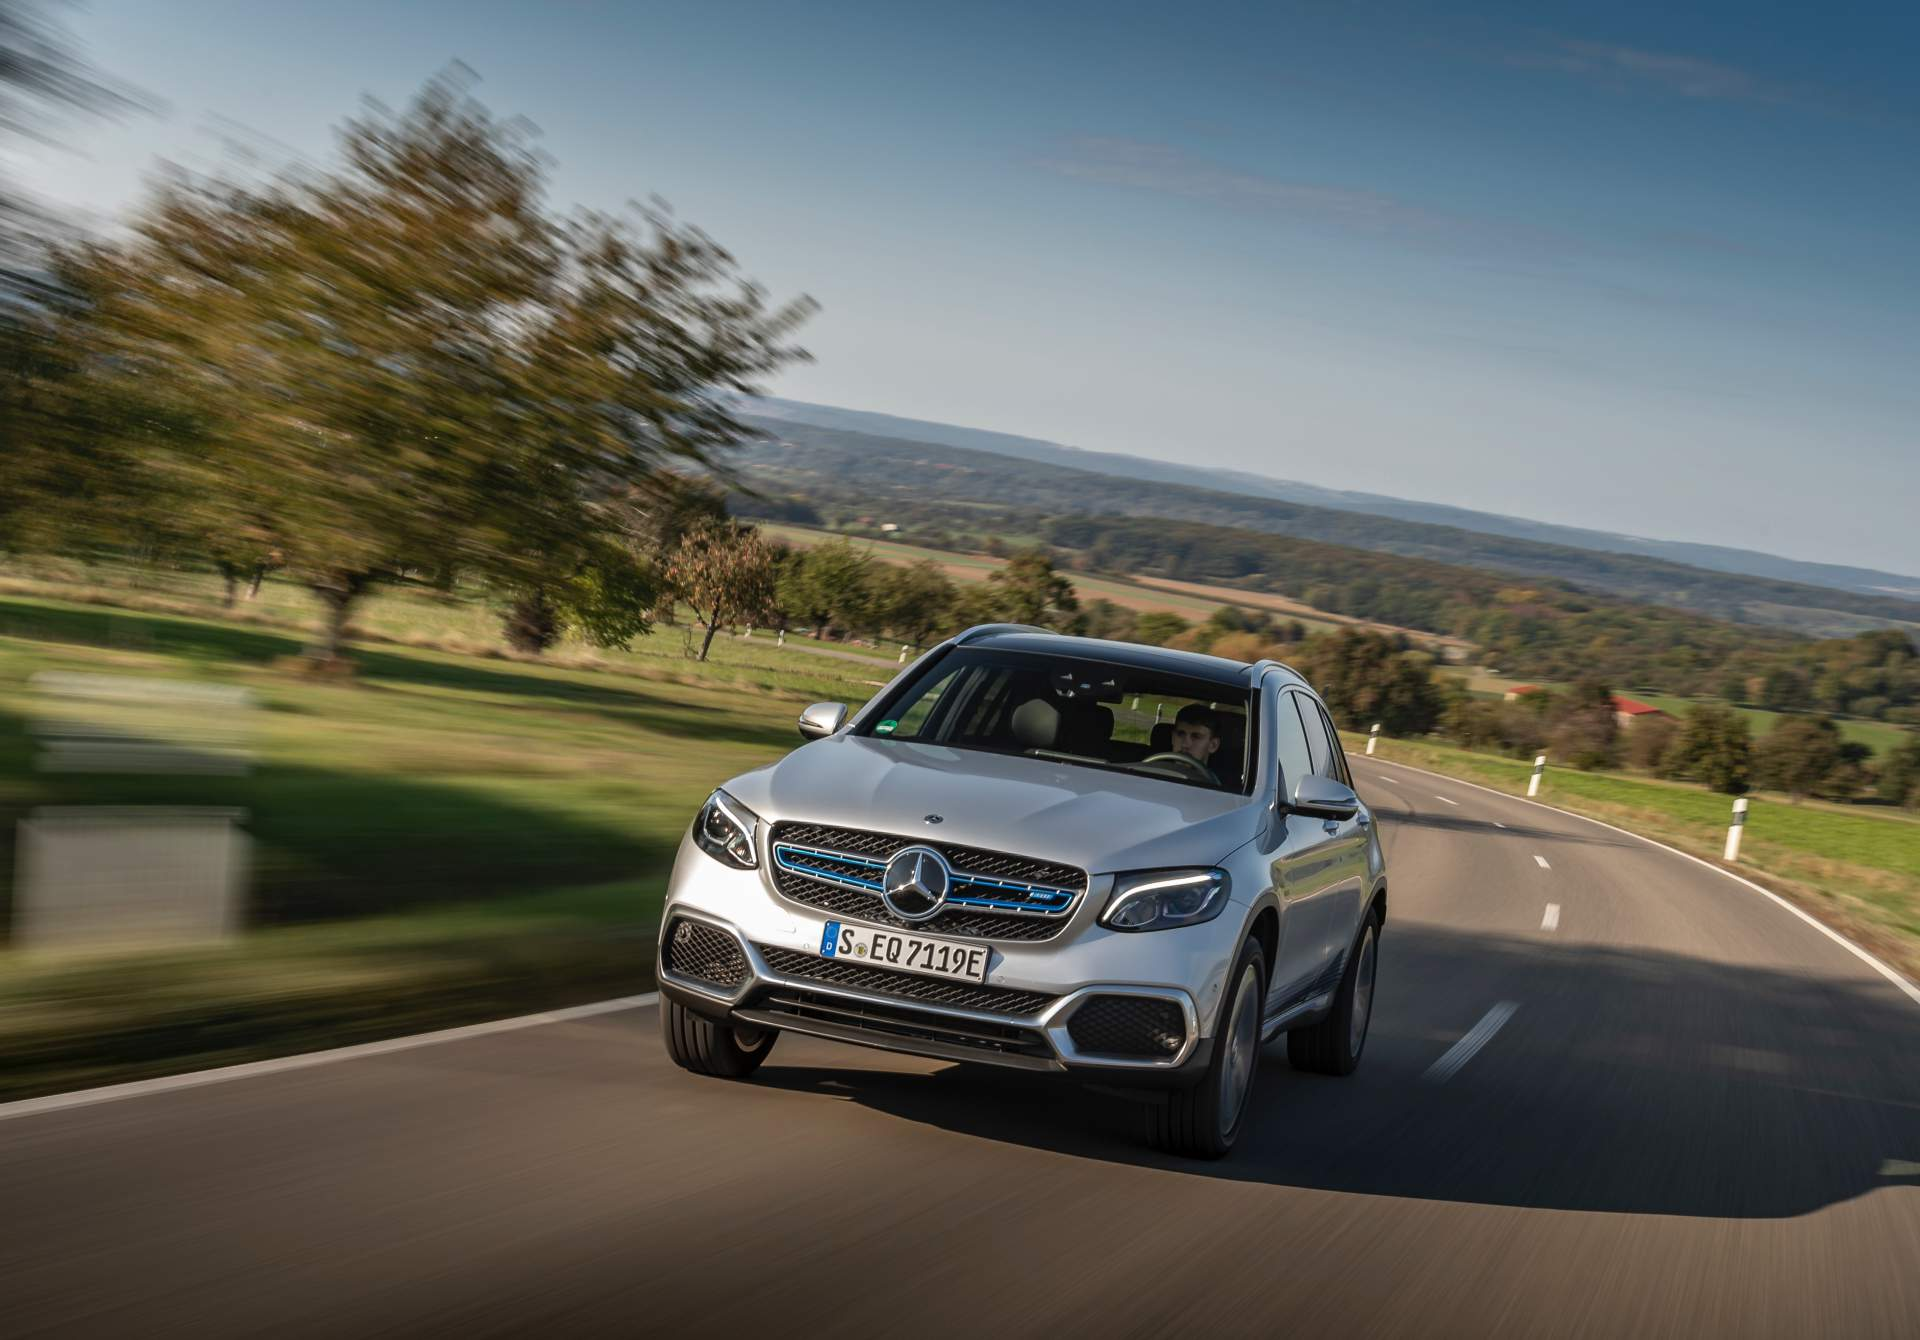 2019_Mercedes_GLC_F-Cell_0047